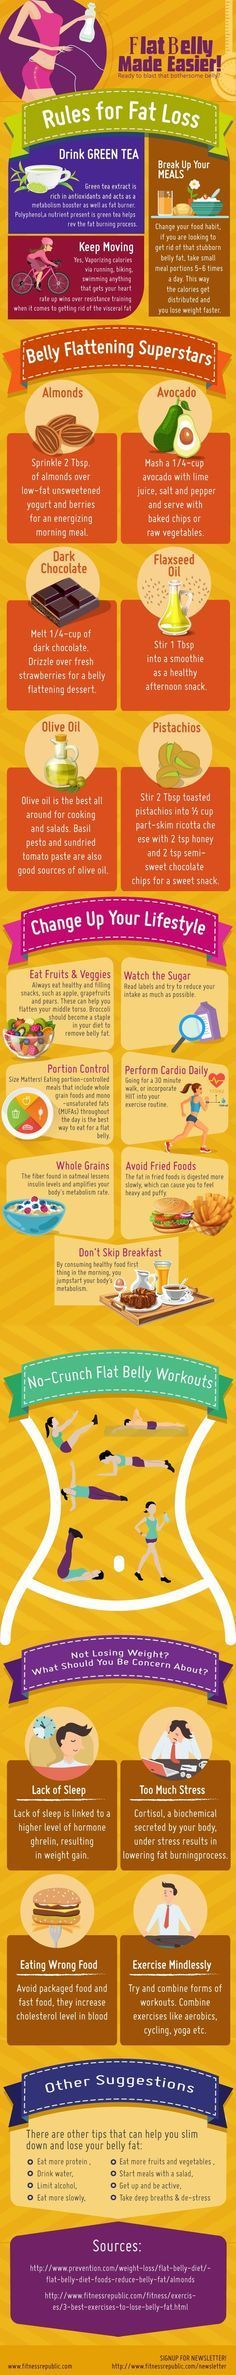 Best way to lose weight in two days